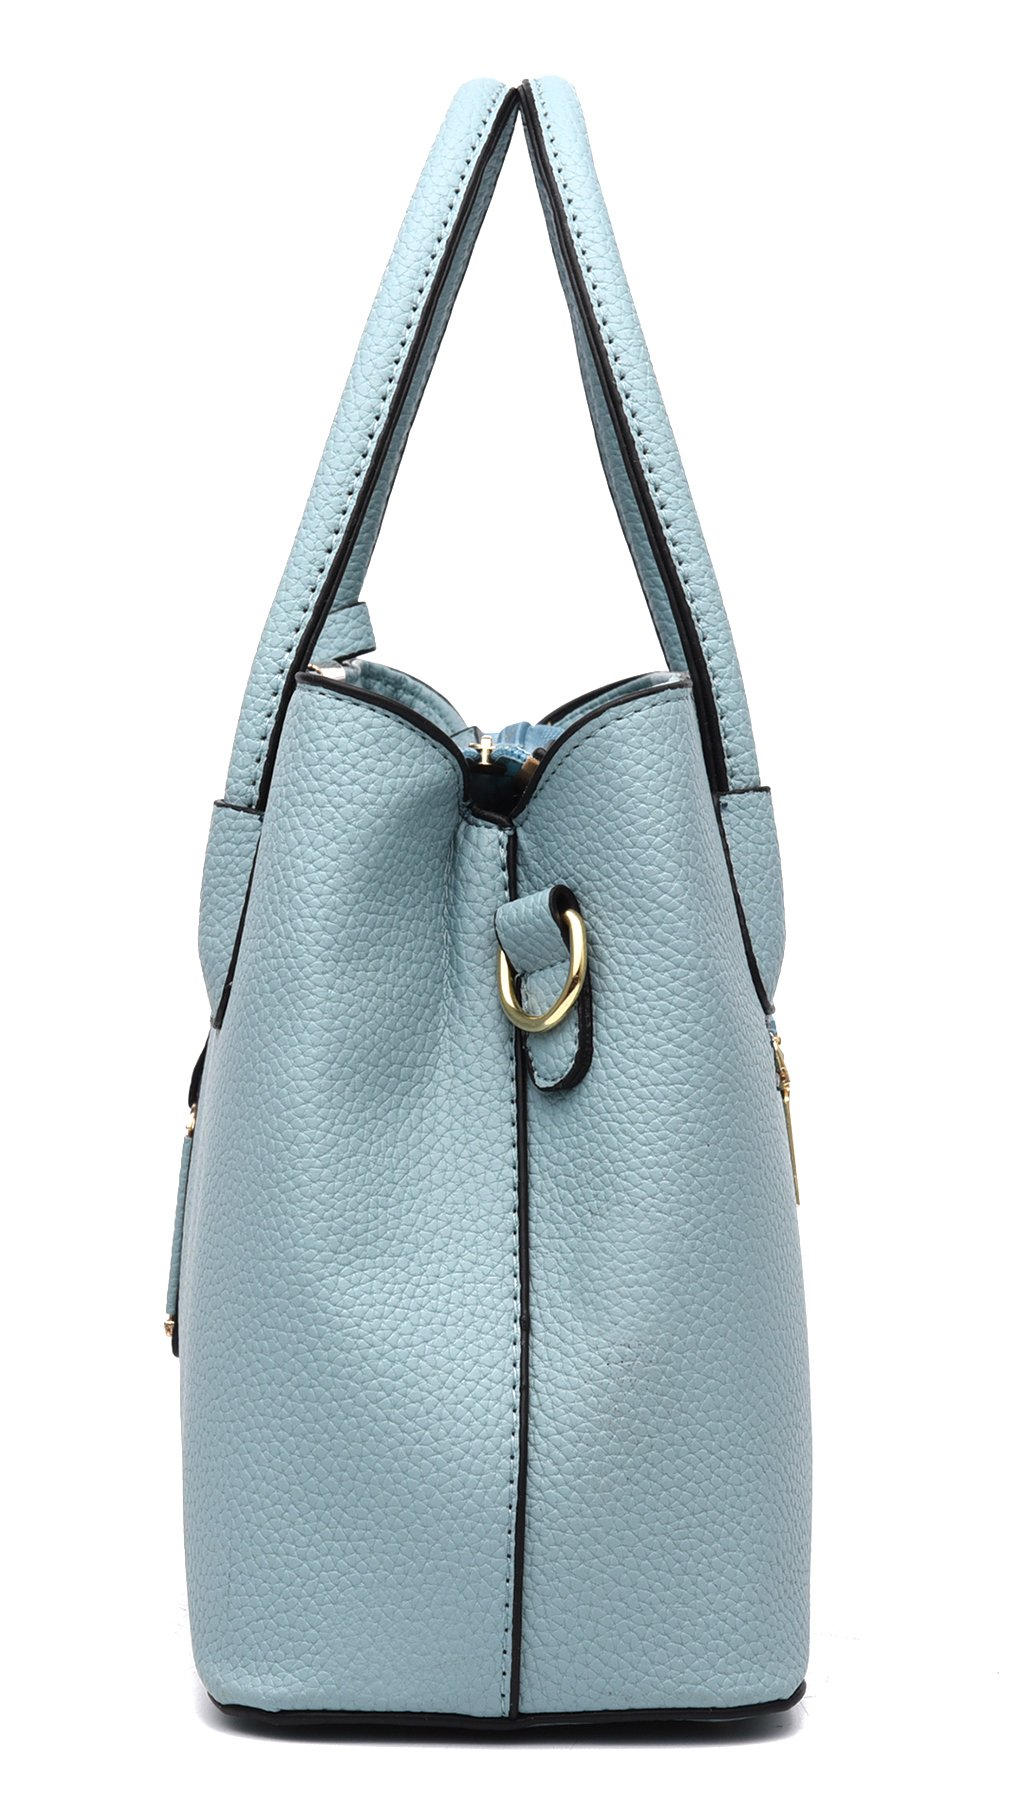 Covelin Women's Top-handle Cross Body Handbag Middle Size Purse Durable Leather Tote Bag Light Blue by Covelin (Image #3)